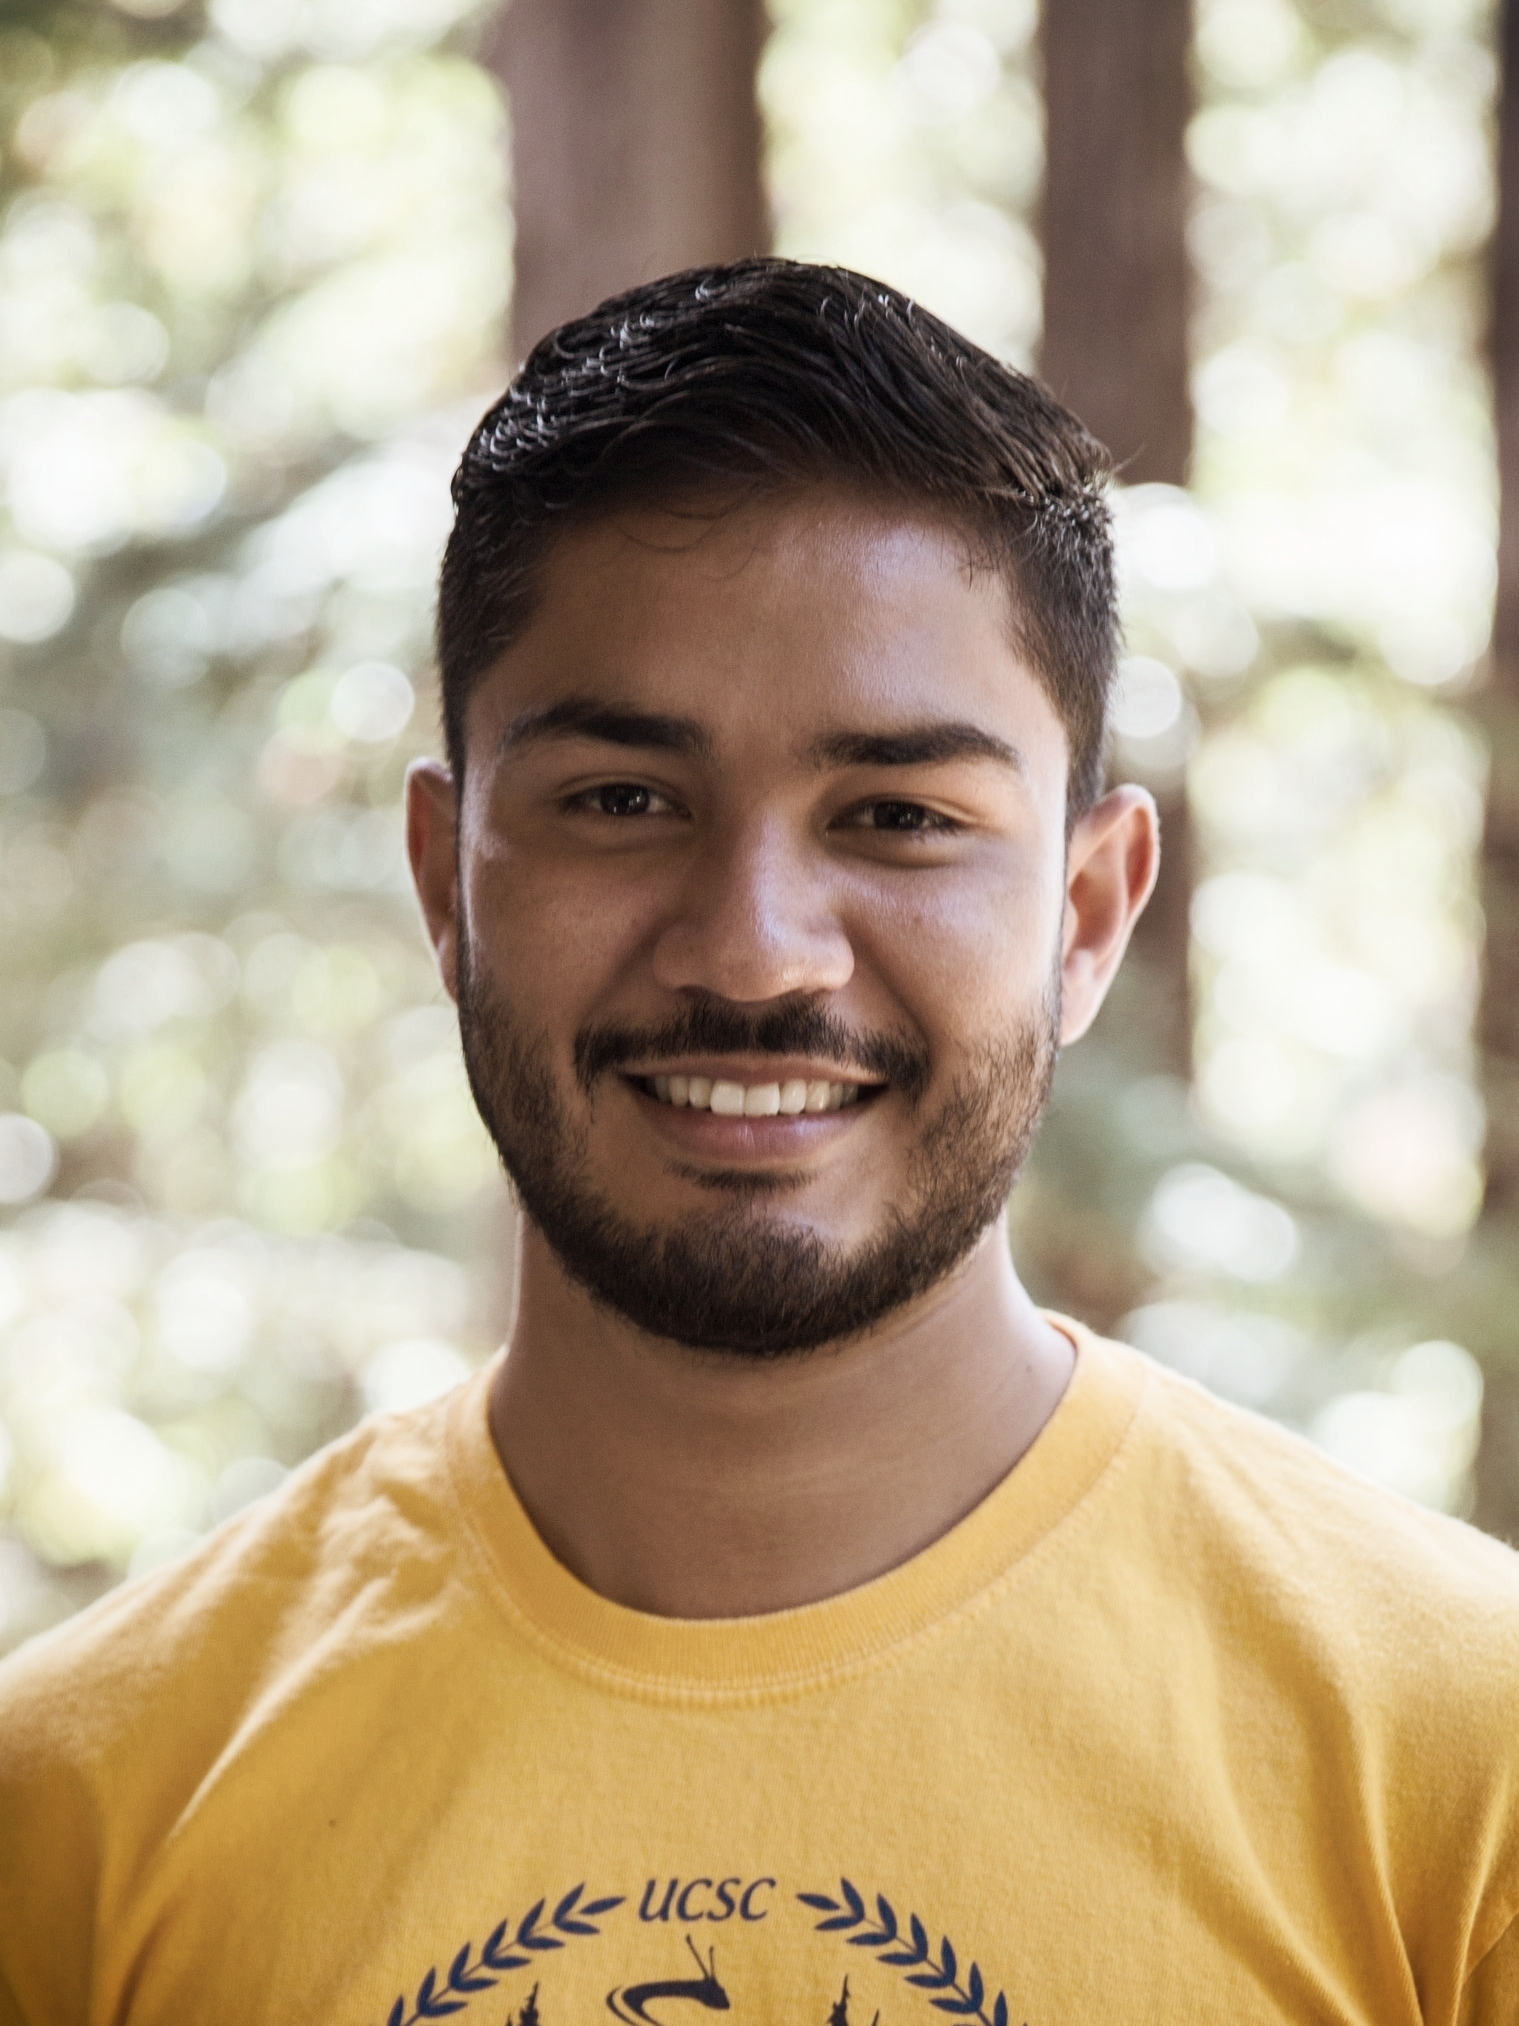 Jose Fuentes (Elect. & Comp. Eng.)  Jose received his  B.S.  in  Electrical Engineering from University of California Santa Cruz (2018)  and is now continuing with his  M.S. in ECE  with a concentration in  Photonics and Electronic Devices  at  UCSC . His research focuses on the fabrication and characterization of nano-fluidic devices as well as BioNEMS technologies for life sciences and point-of-care-diagnostics.